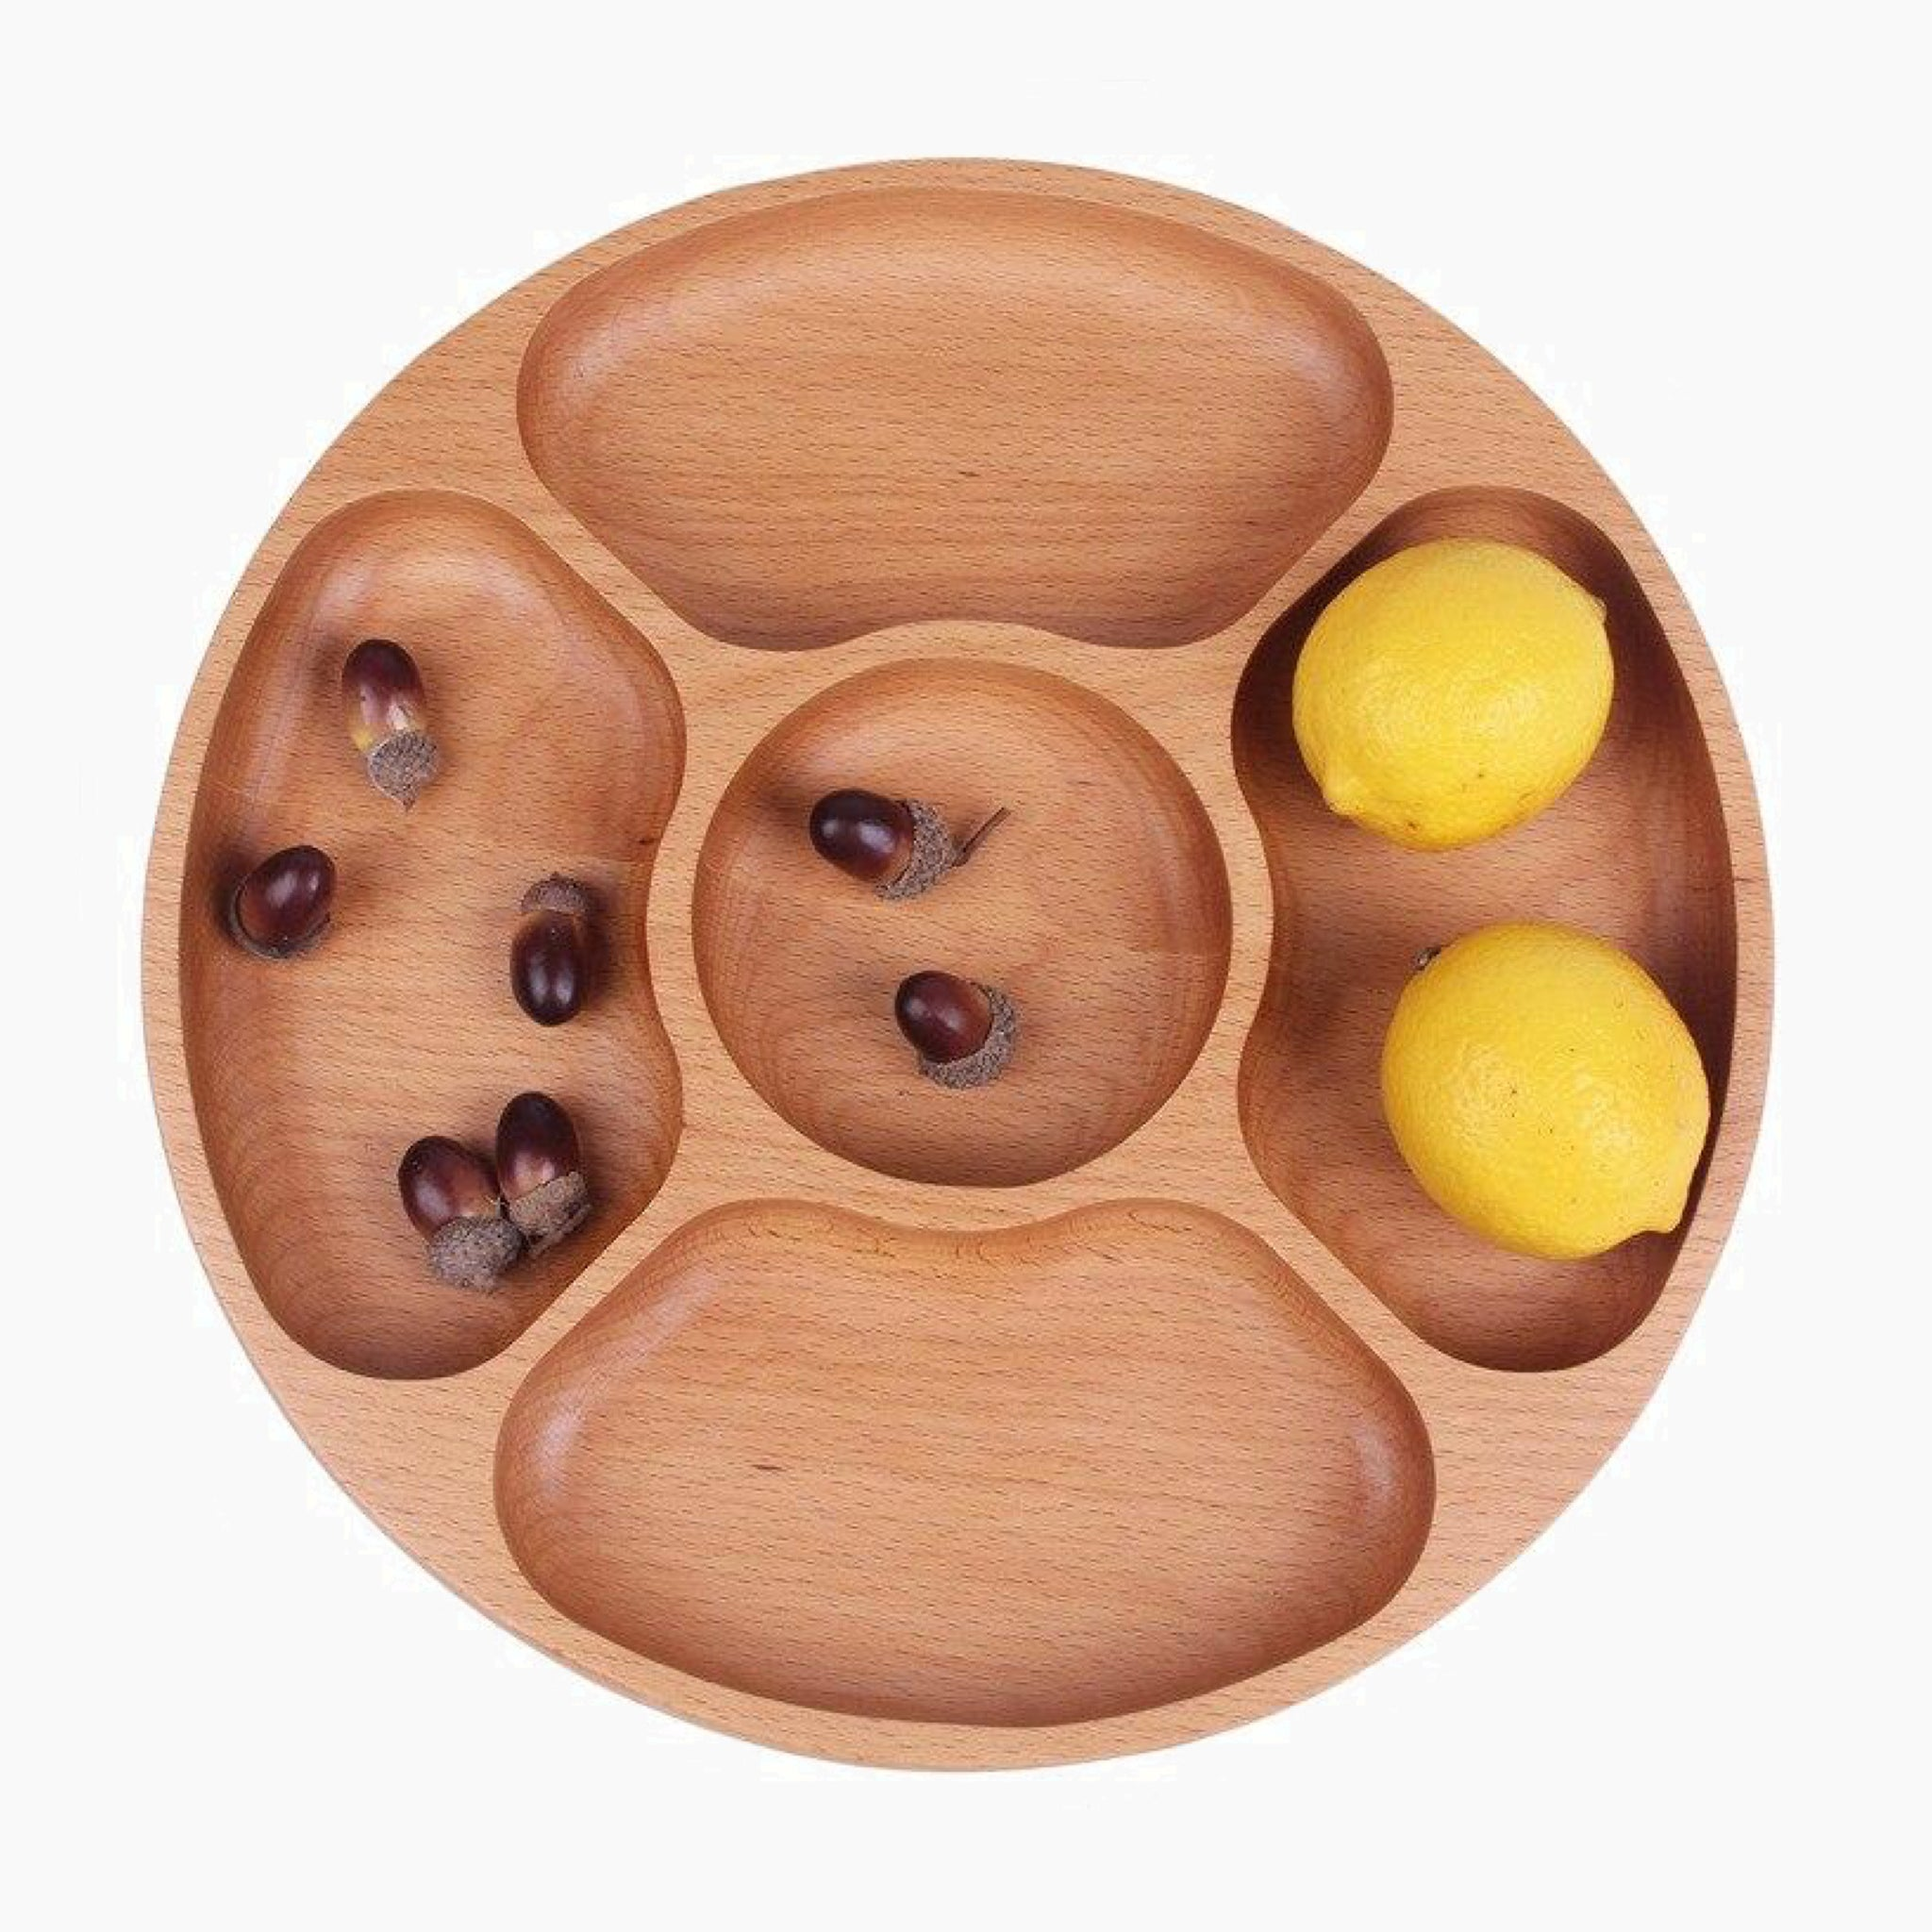 Wooden Chip and Dip Serving Fruit Snack Tray Food Snacks Nibbles Platter Trays Plate BBQ Outdoor Party Occasion Serveware Kitchen Home Restaurant Tool Trend